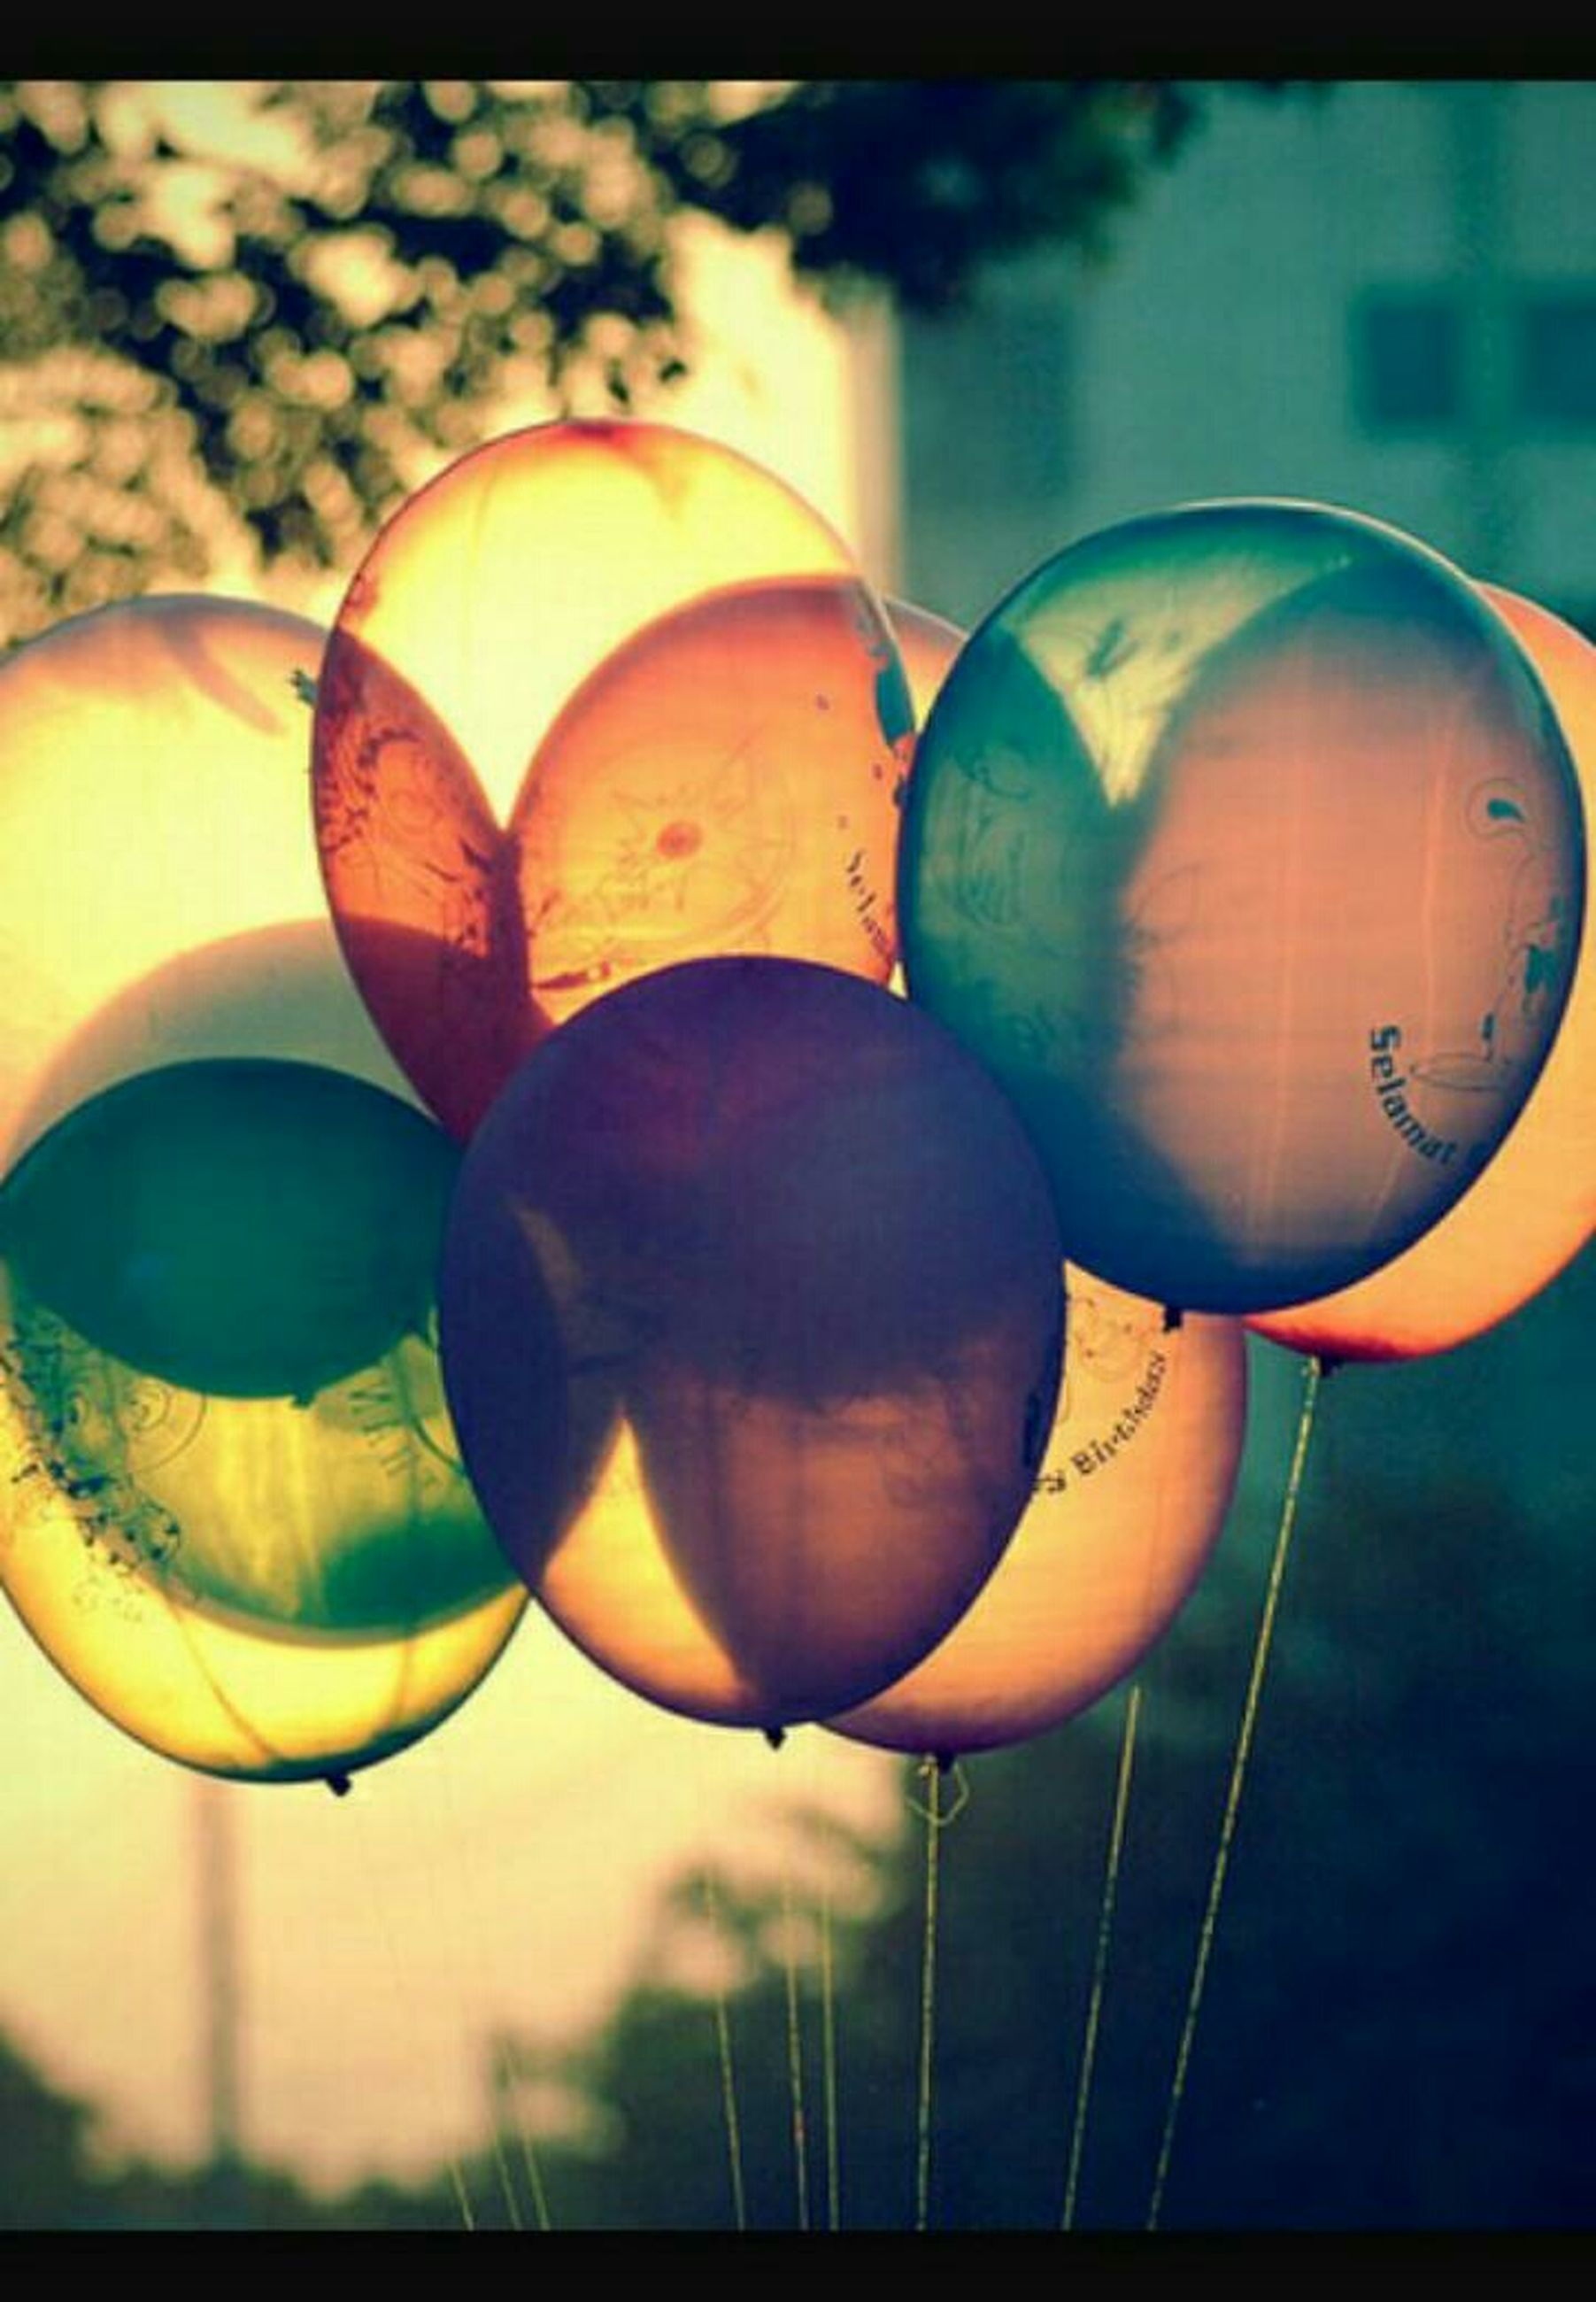 focus on foreground, close-up, hanging, sphere, low angle view, decoration, balloon, lantern, no people, multi colored, orange color, circle, celebration, outdoors, lighting equipment, sky, ball, auto post production filter, shape, cultures